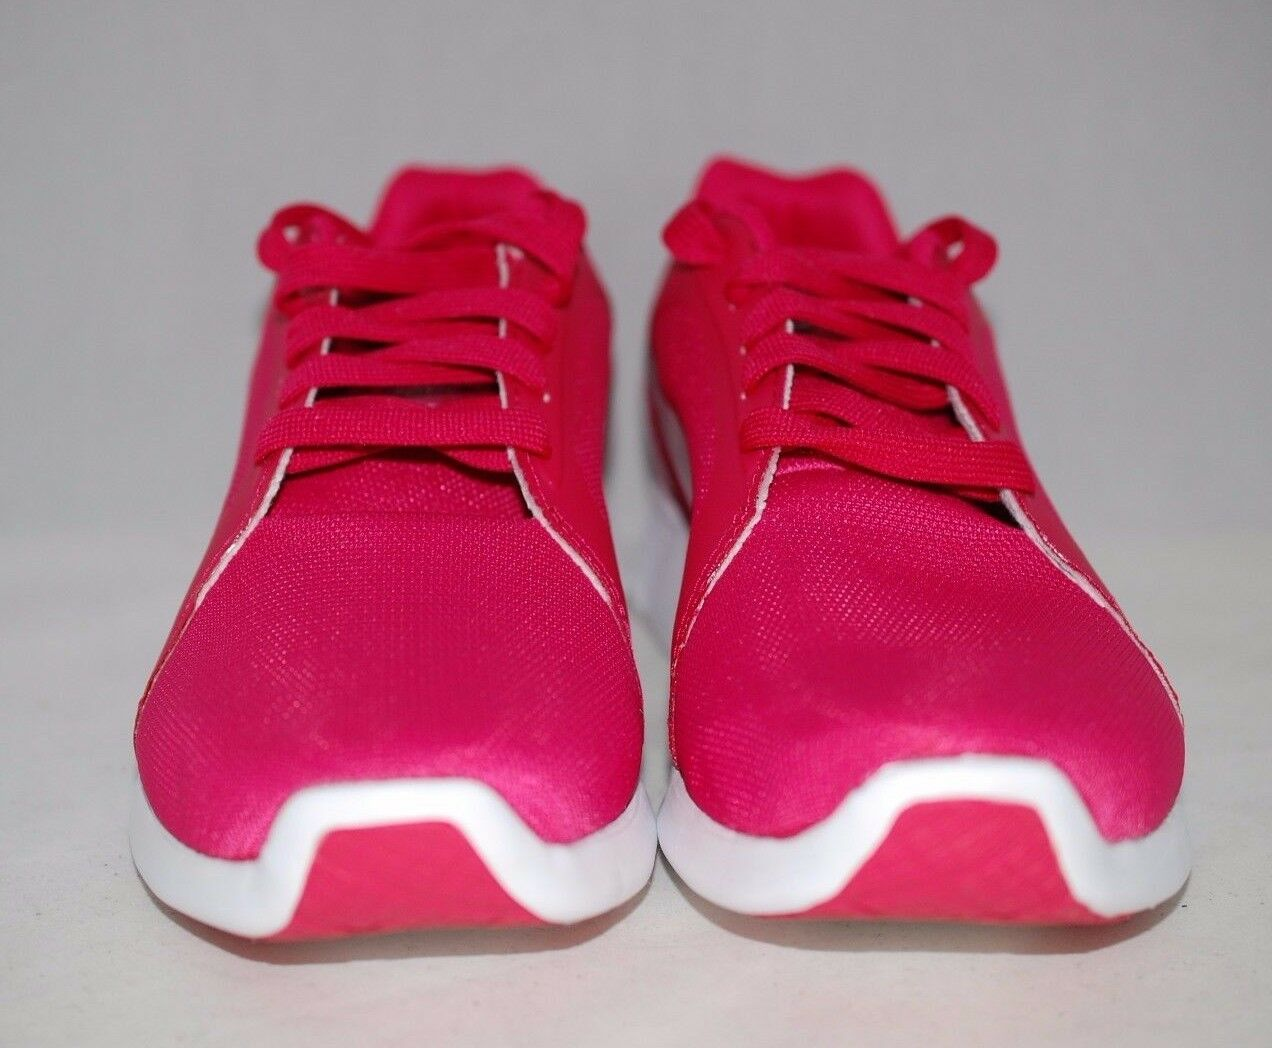 PUMA ST Trainer Trainer Trainer EVO Pink White Running Training Sneaker shoes 8 US 38.5 EU 5.5UK 2ad43a